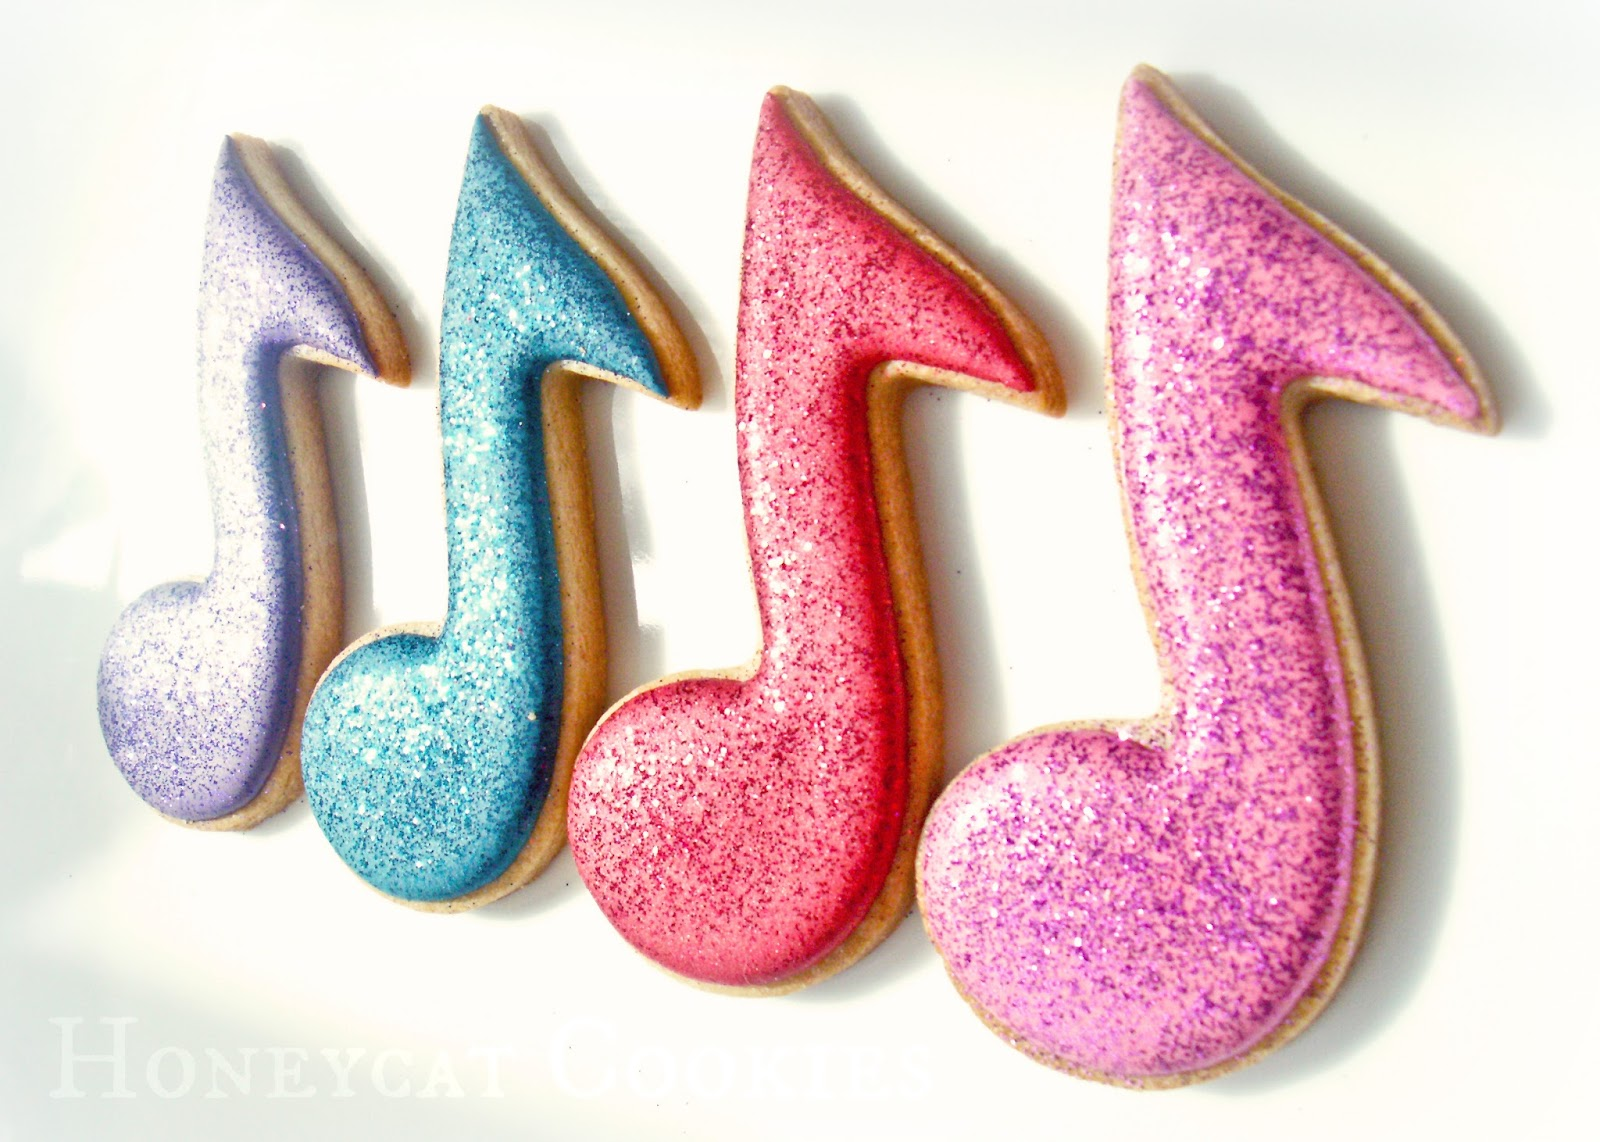 Musical Note cookies made with disco dust, or 'non toxic' glitter. Cookies by Honeycat Cookies, glitter by Rainbow Dust.